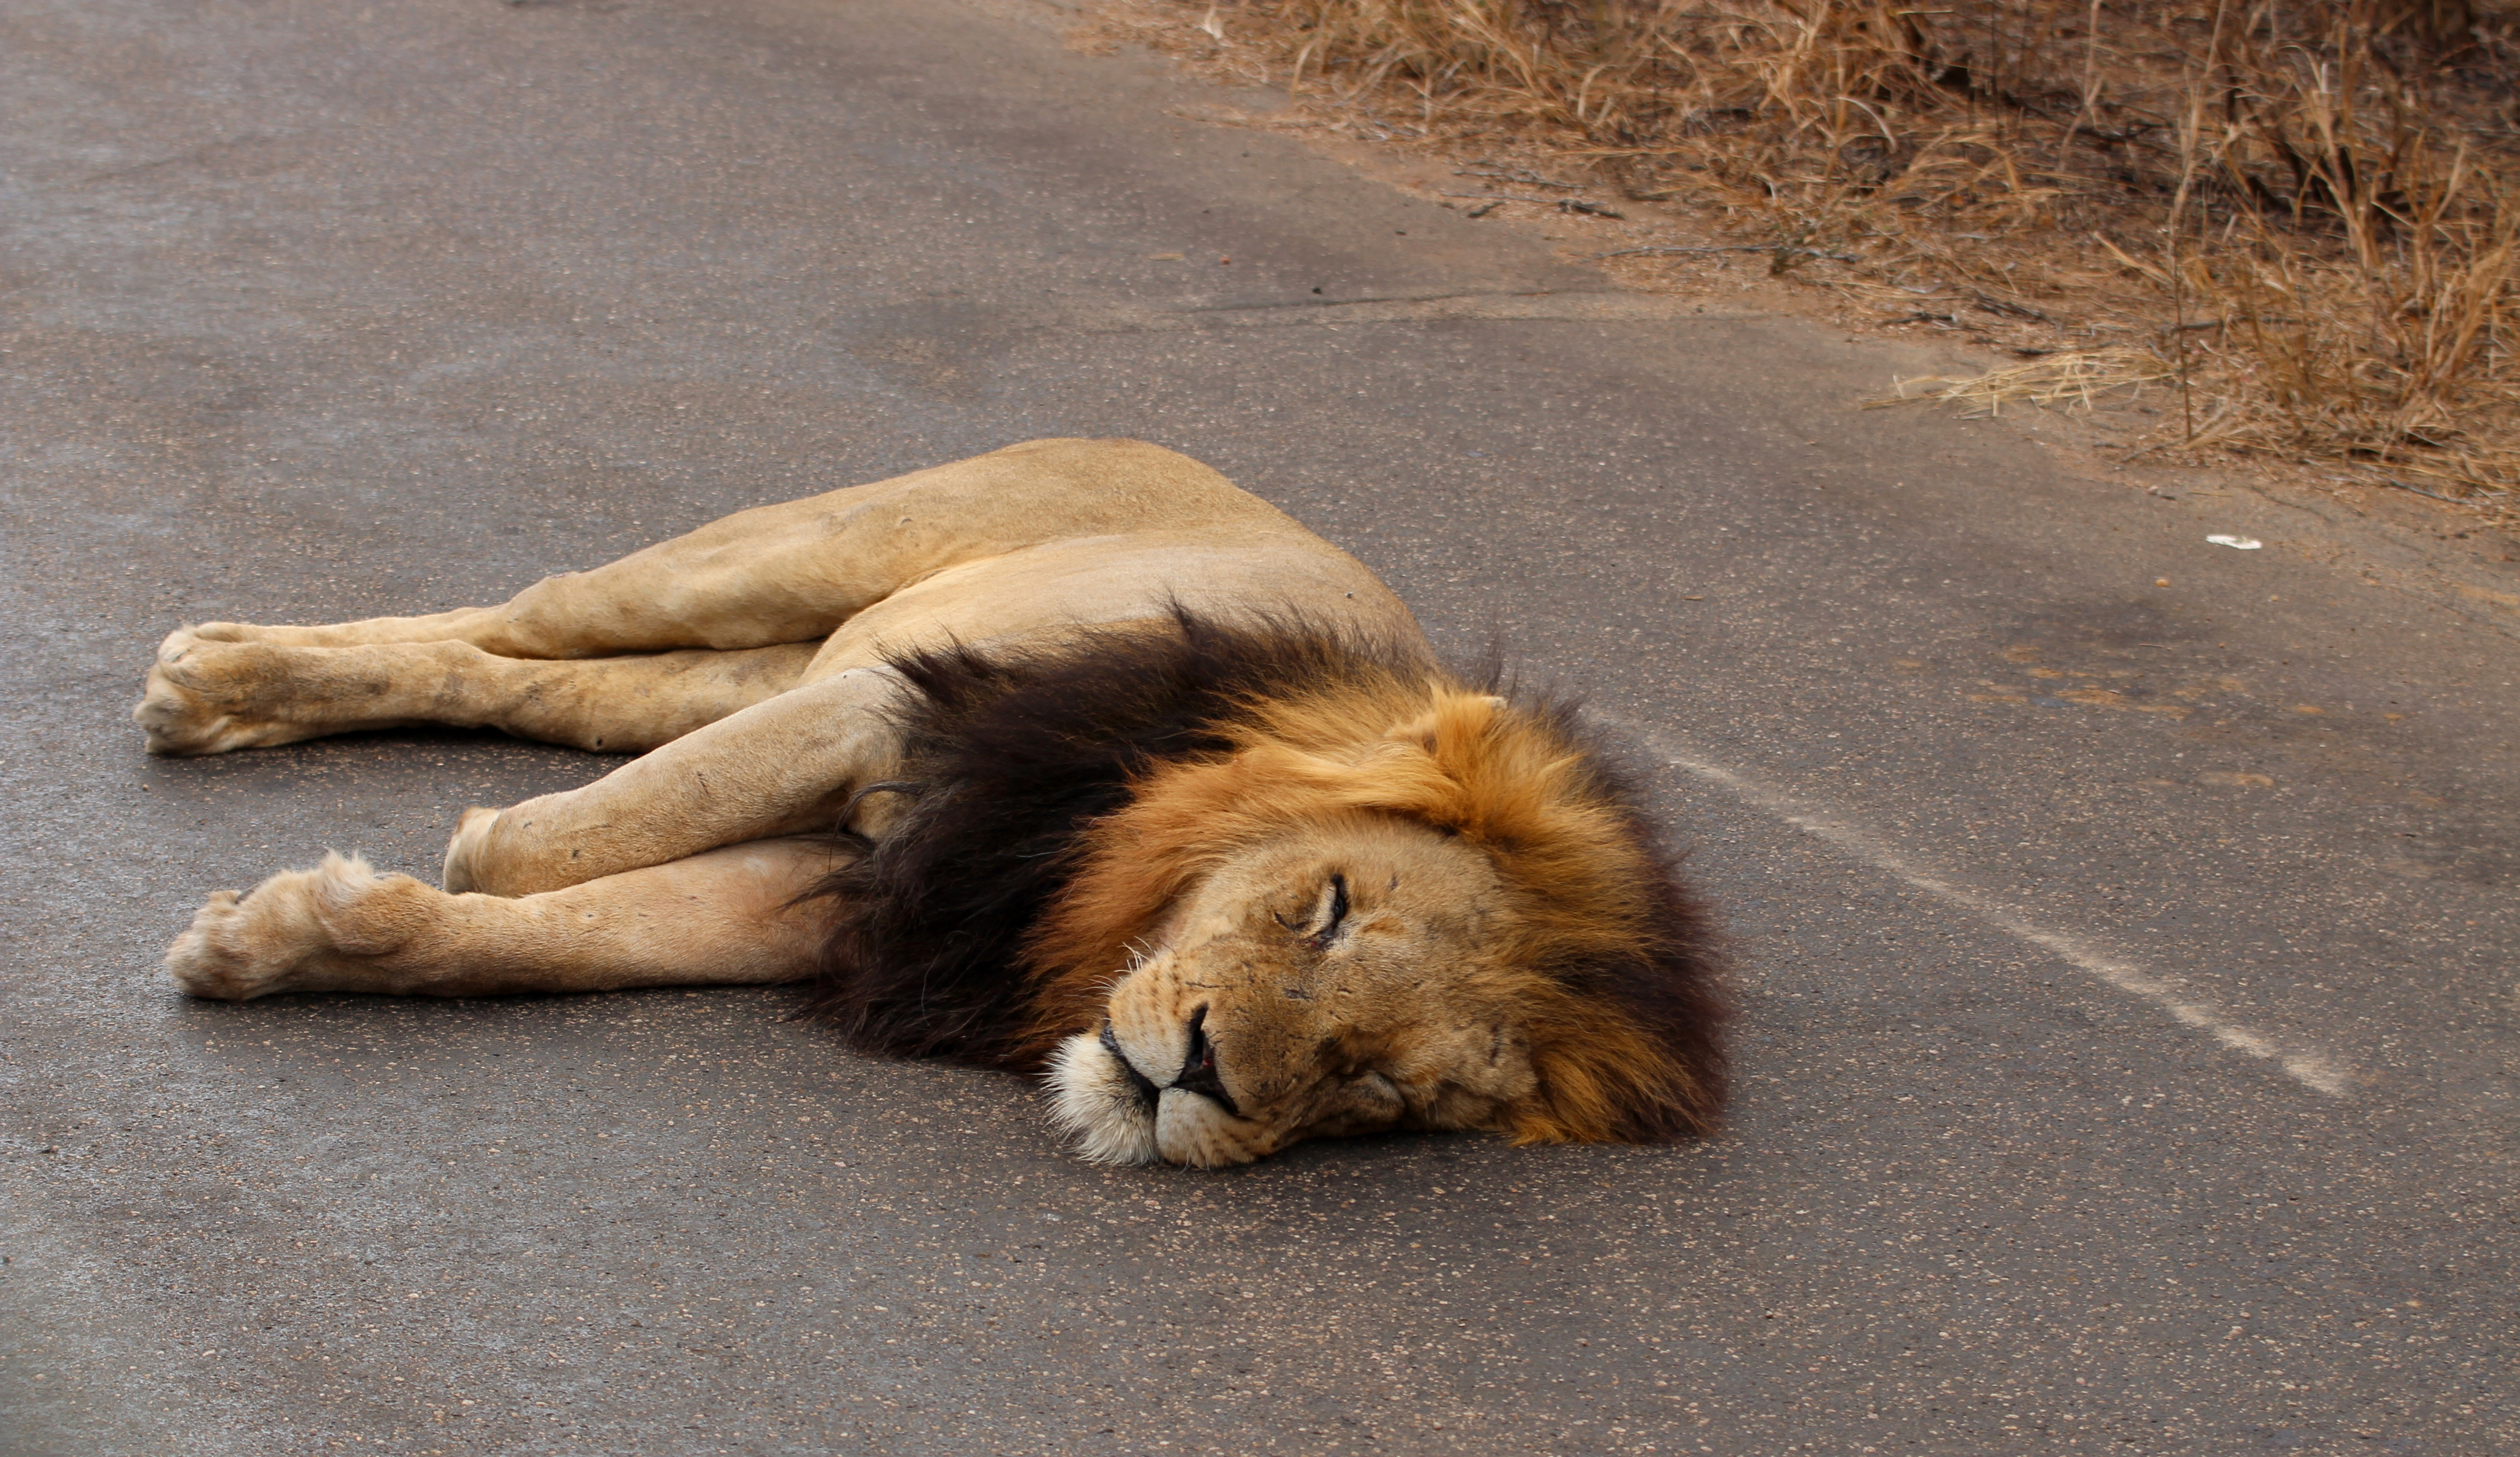 Kruger lion sleeping in road